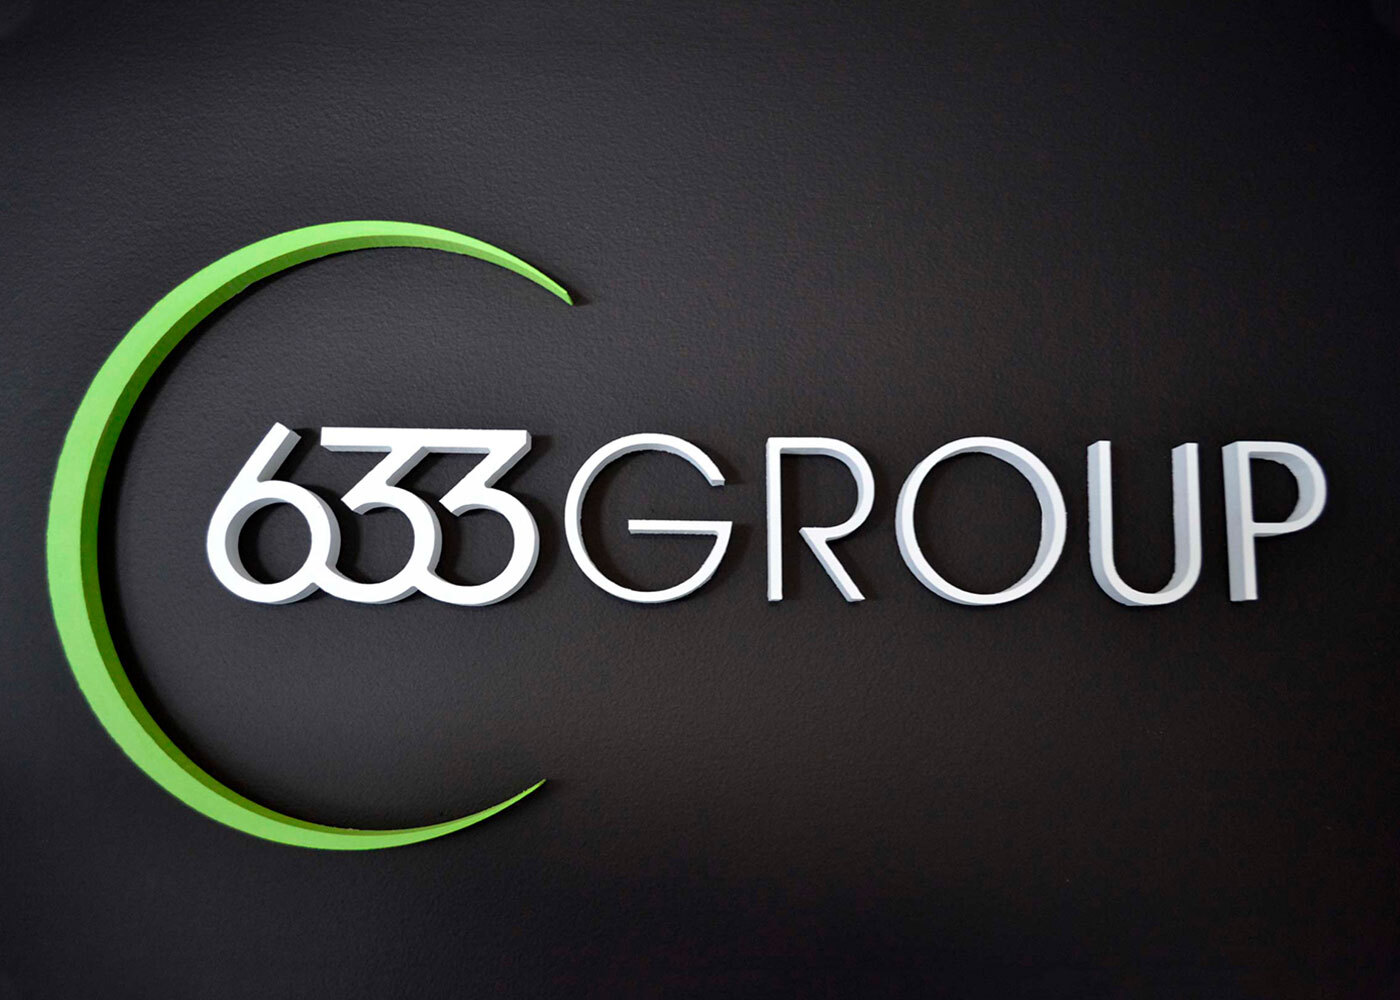 633 Group entryway logo